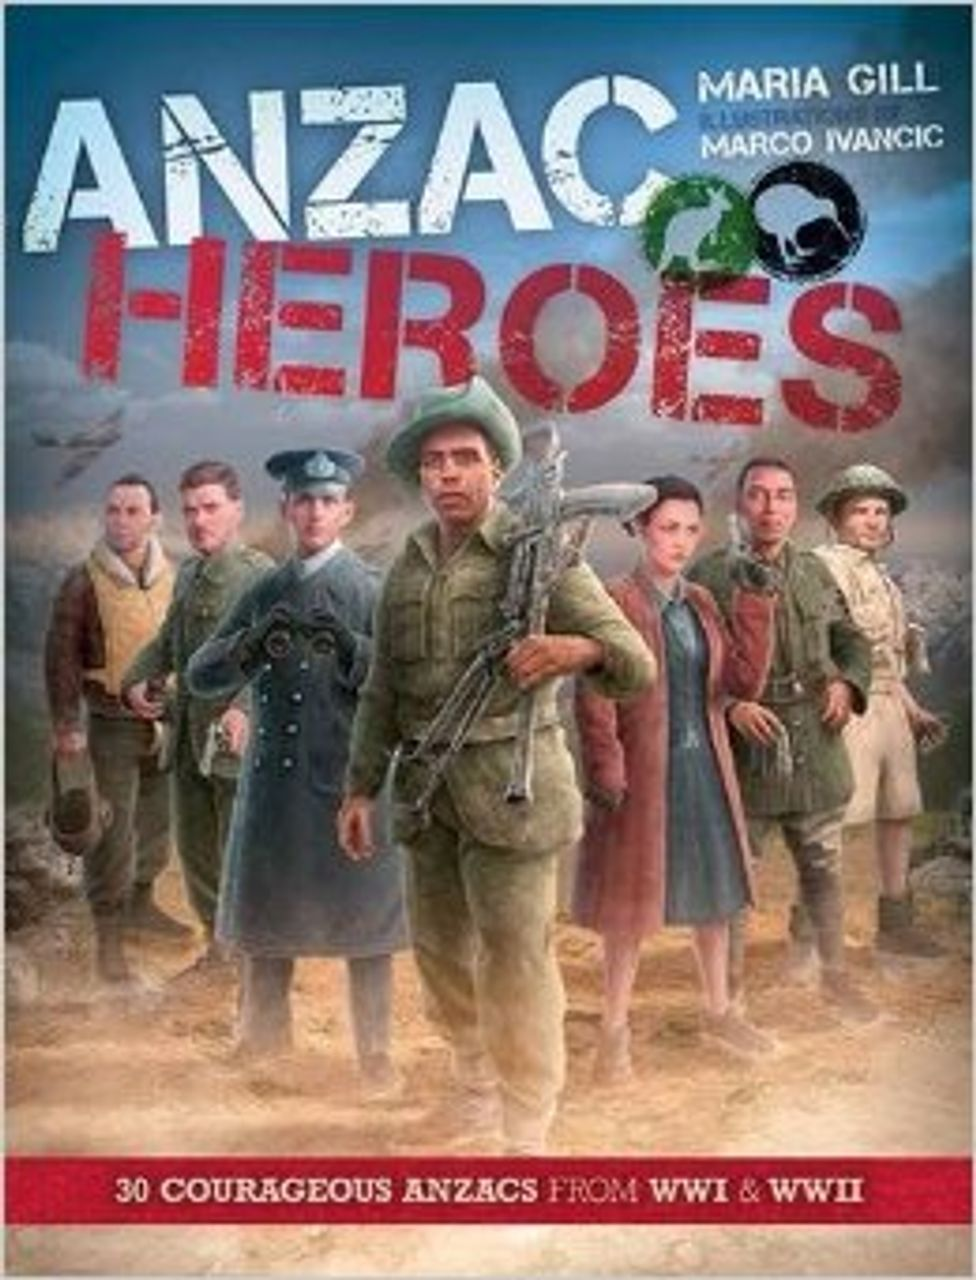 ANZAC heroes book cover